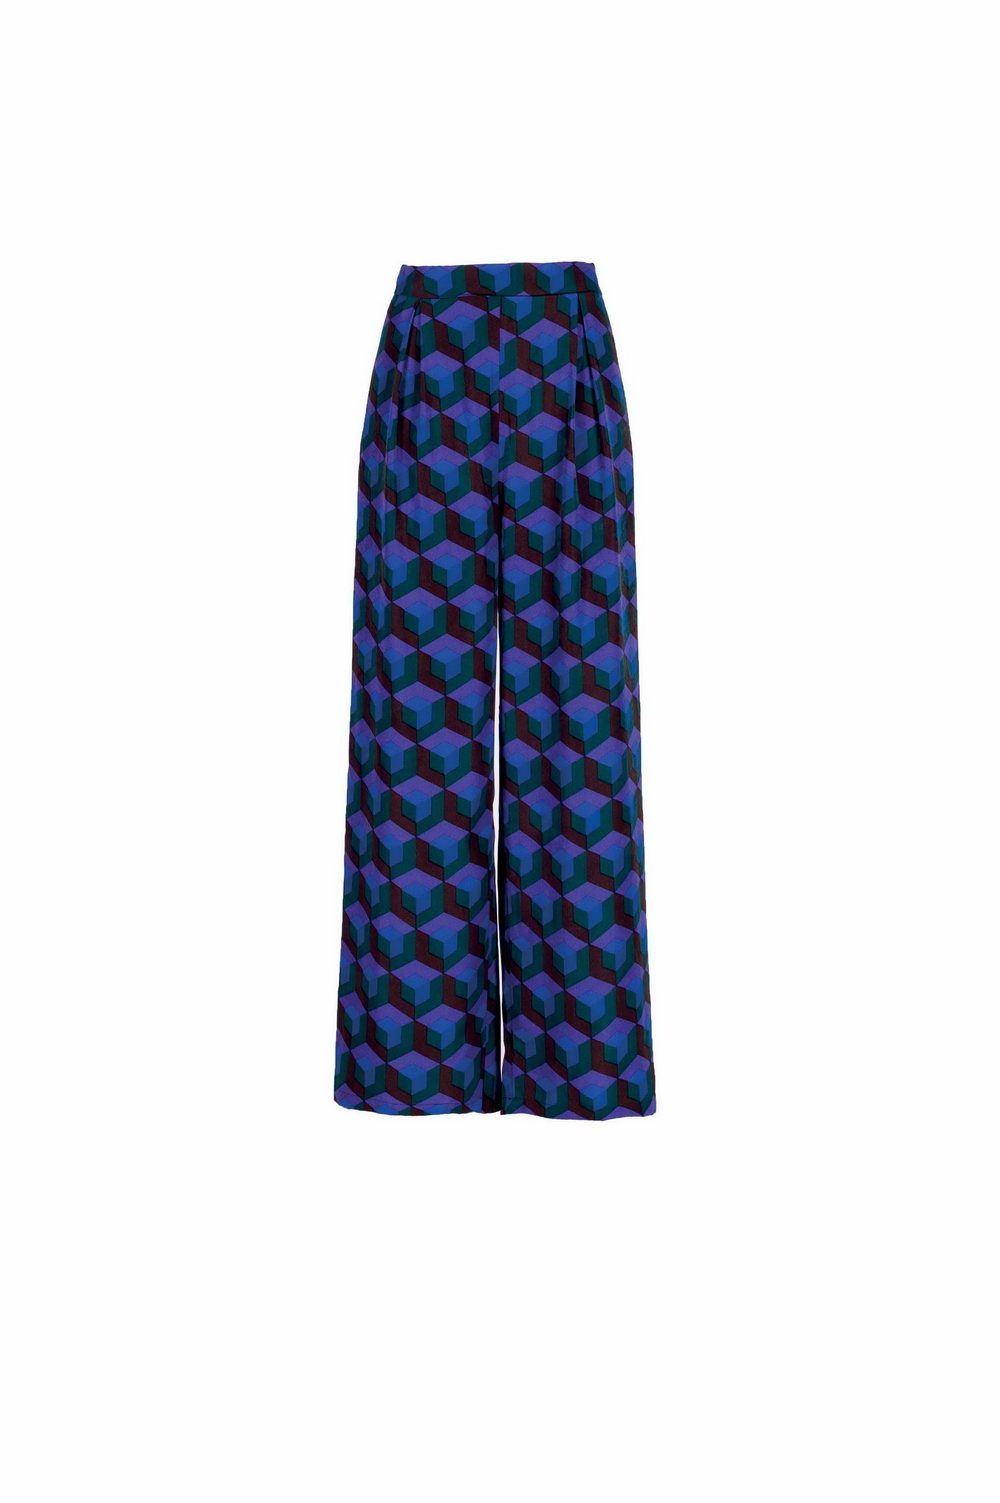 AnonymeDesigners_U139FP028 - Trousers - PVP 92,10€_resize